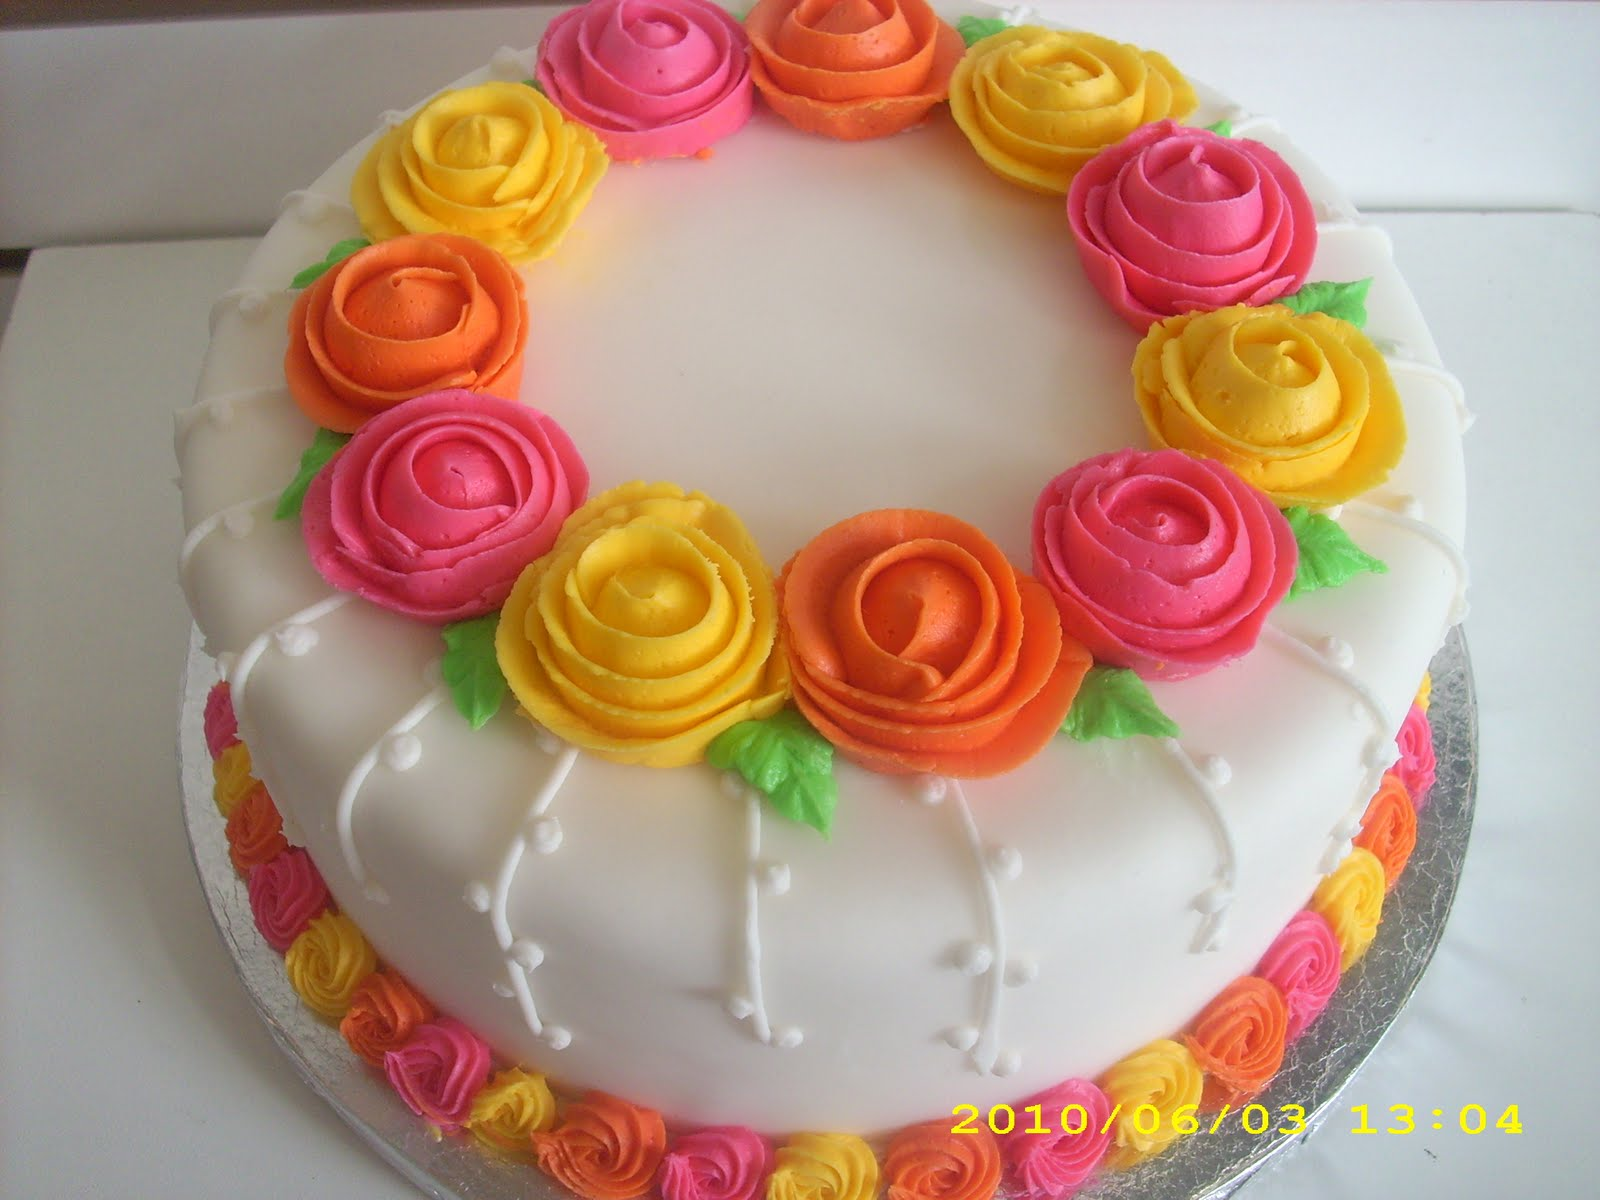 Cake Decorating Images : Cake-A-Thon: Decorating Basics Wilton Method Course